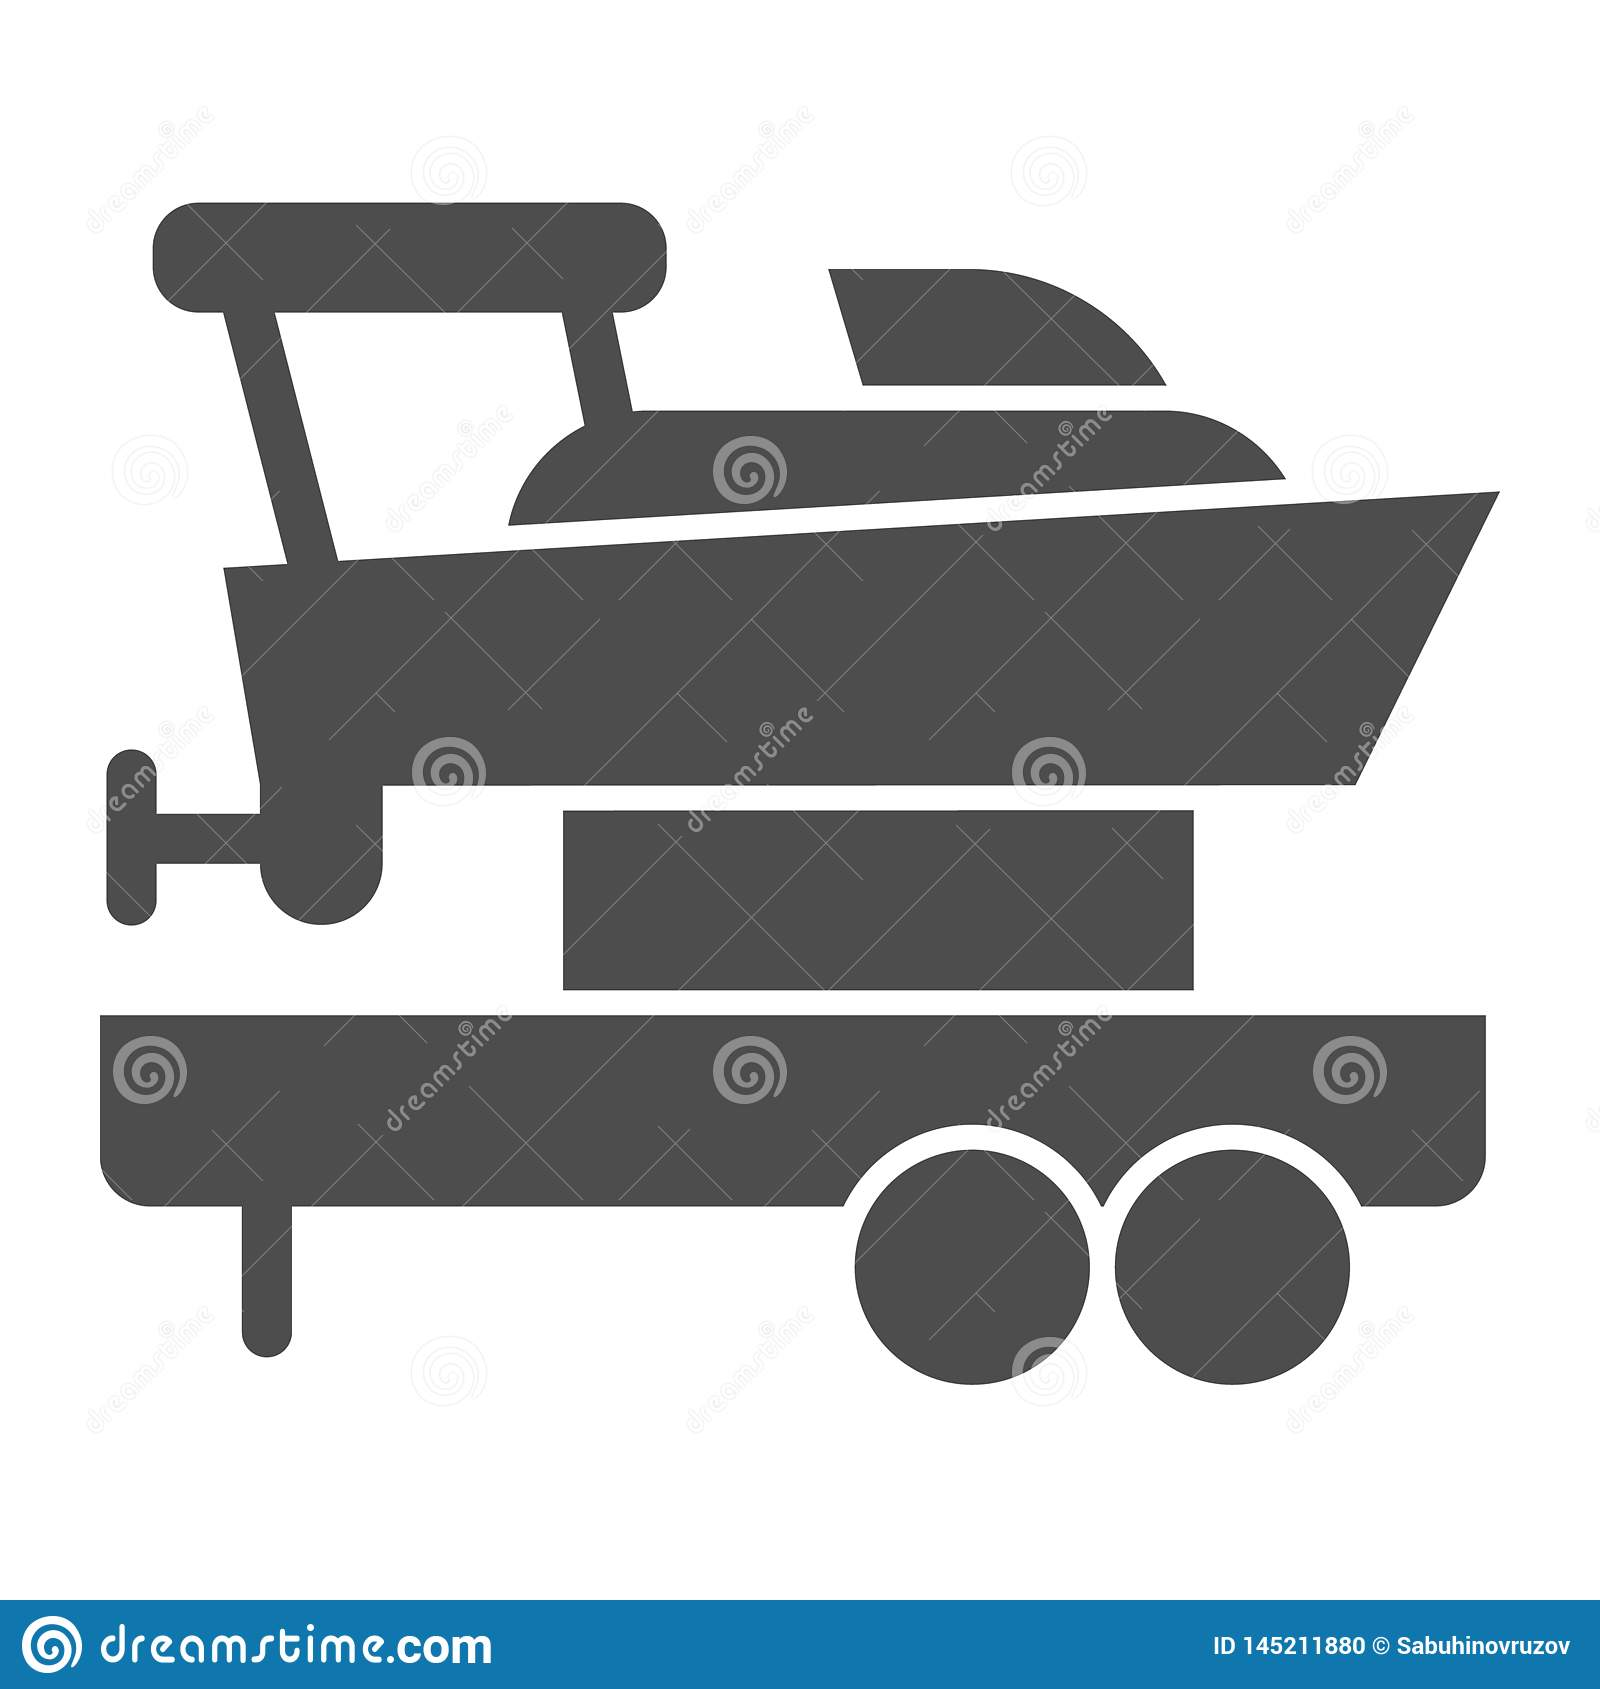 Boat with trailer solid icon. Ship transportation vector illustration isolated on white. Sailboat on truck glyph style